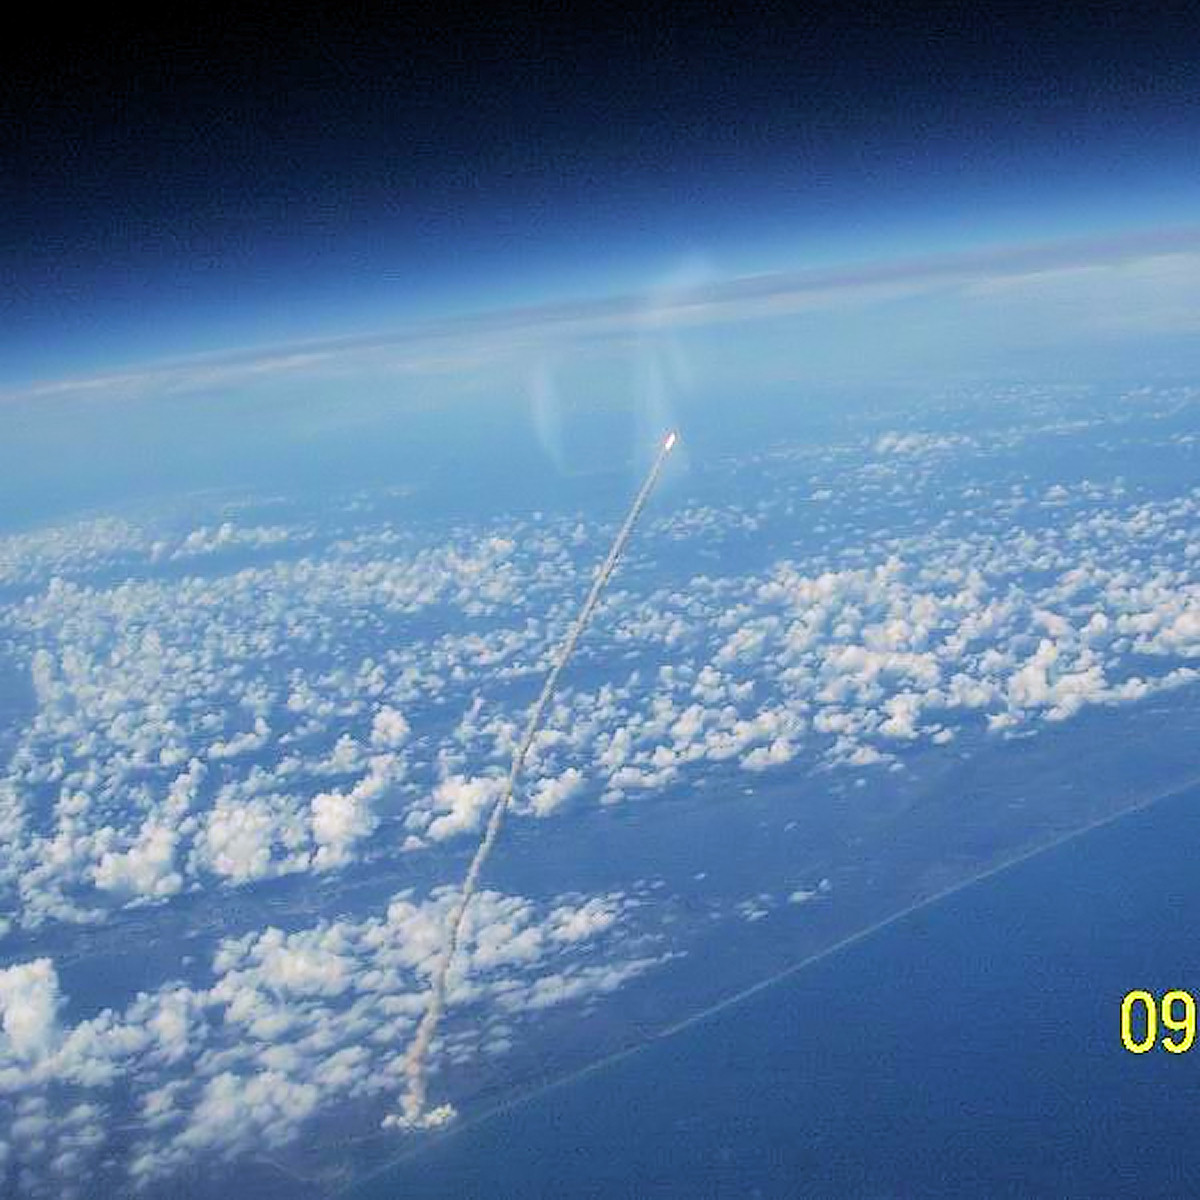 space shuttle launch from station - photo #4